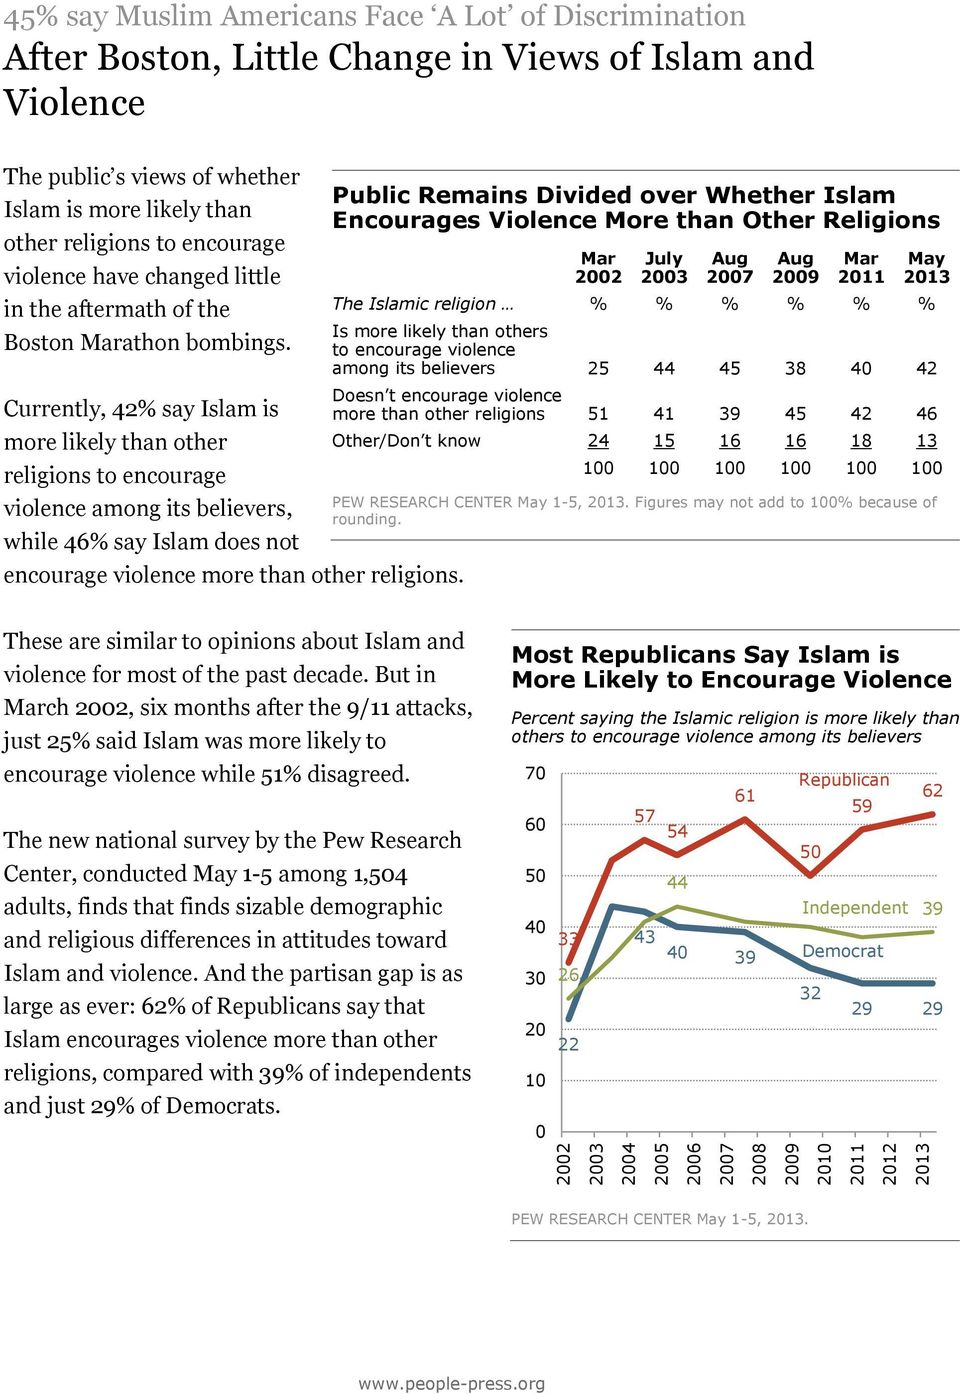 Currently, 42% say Islam is more likely than other religions to encourage violence among its believers, while 46% say Islam does not encourage violence more than other religions.